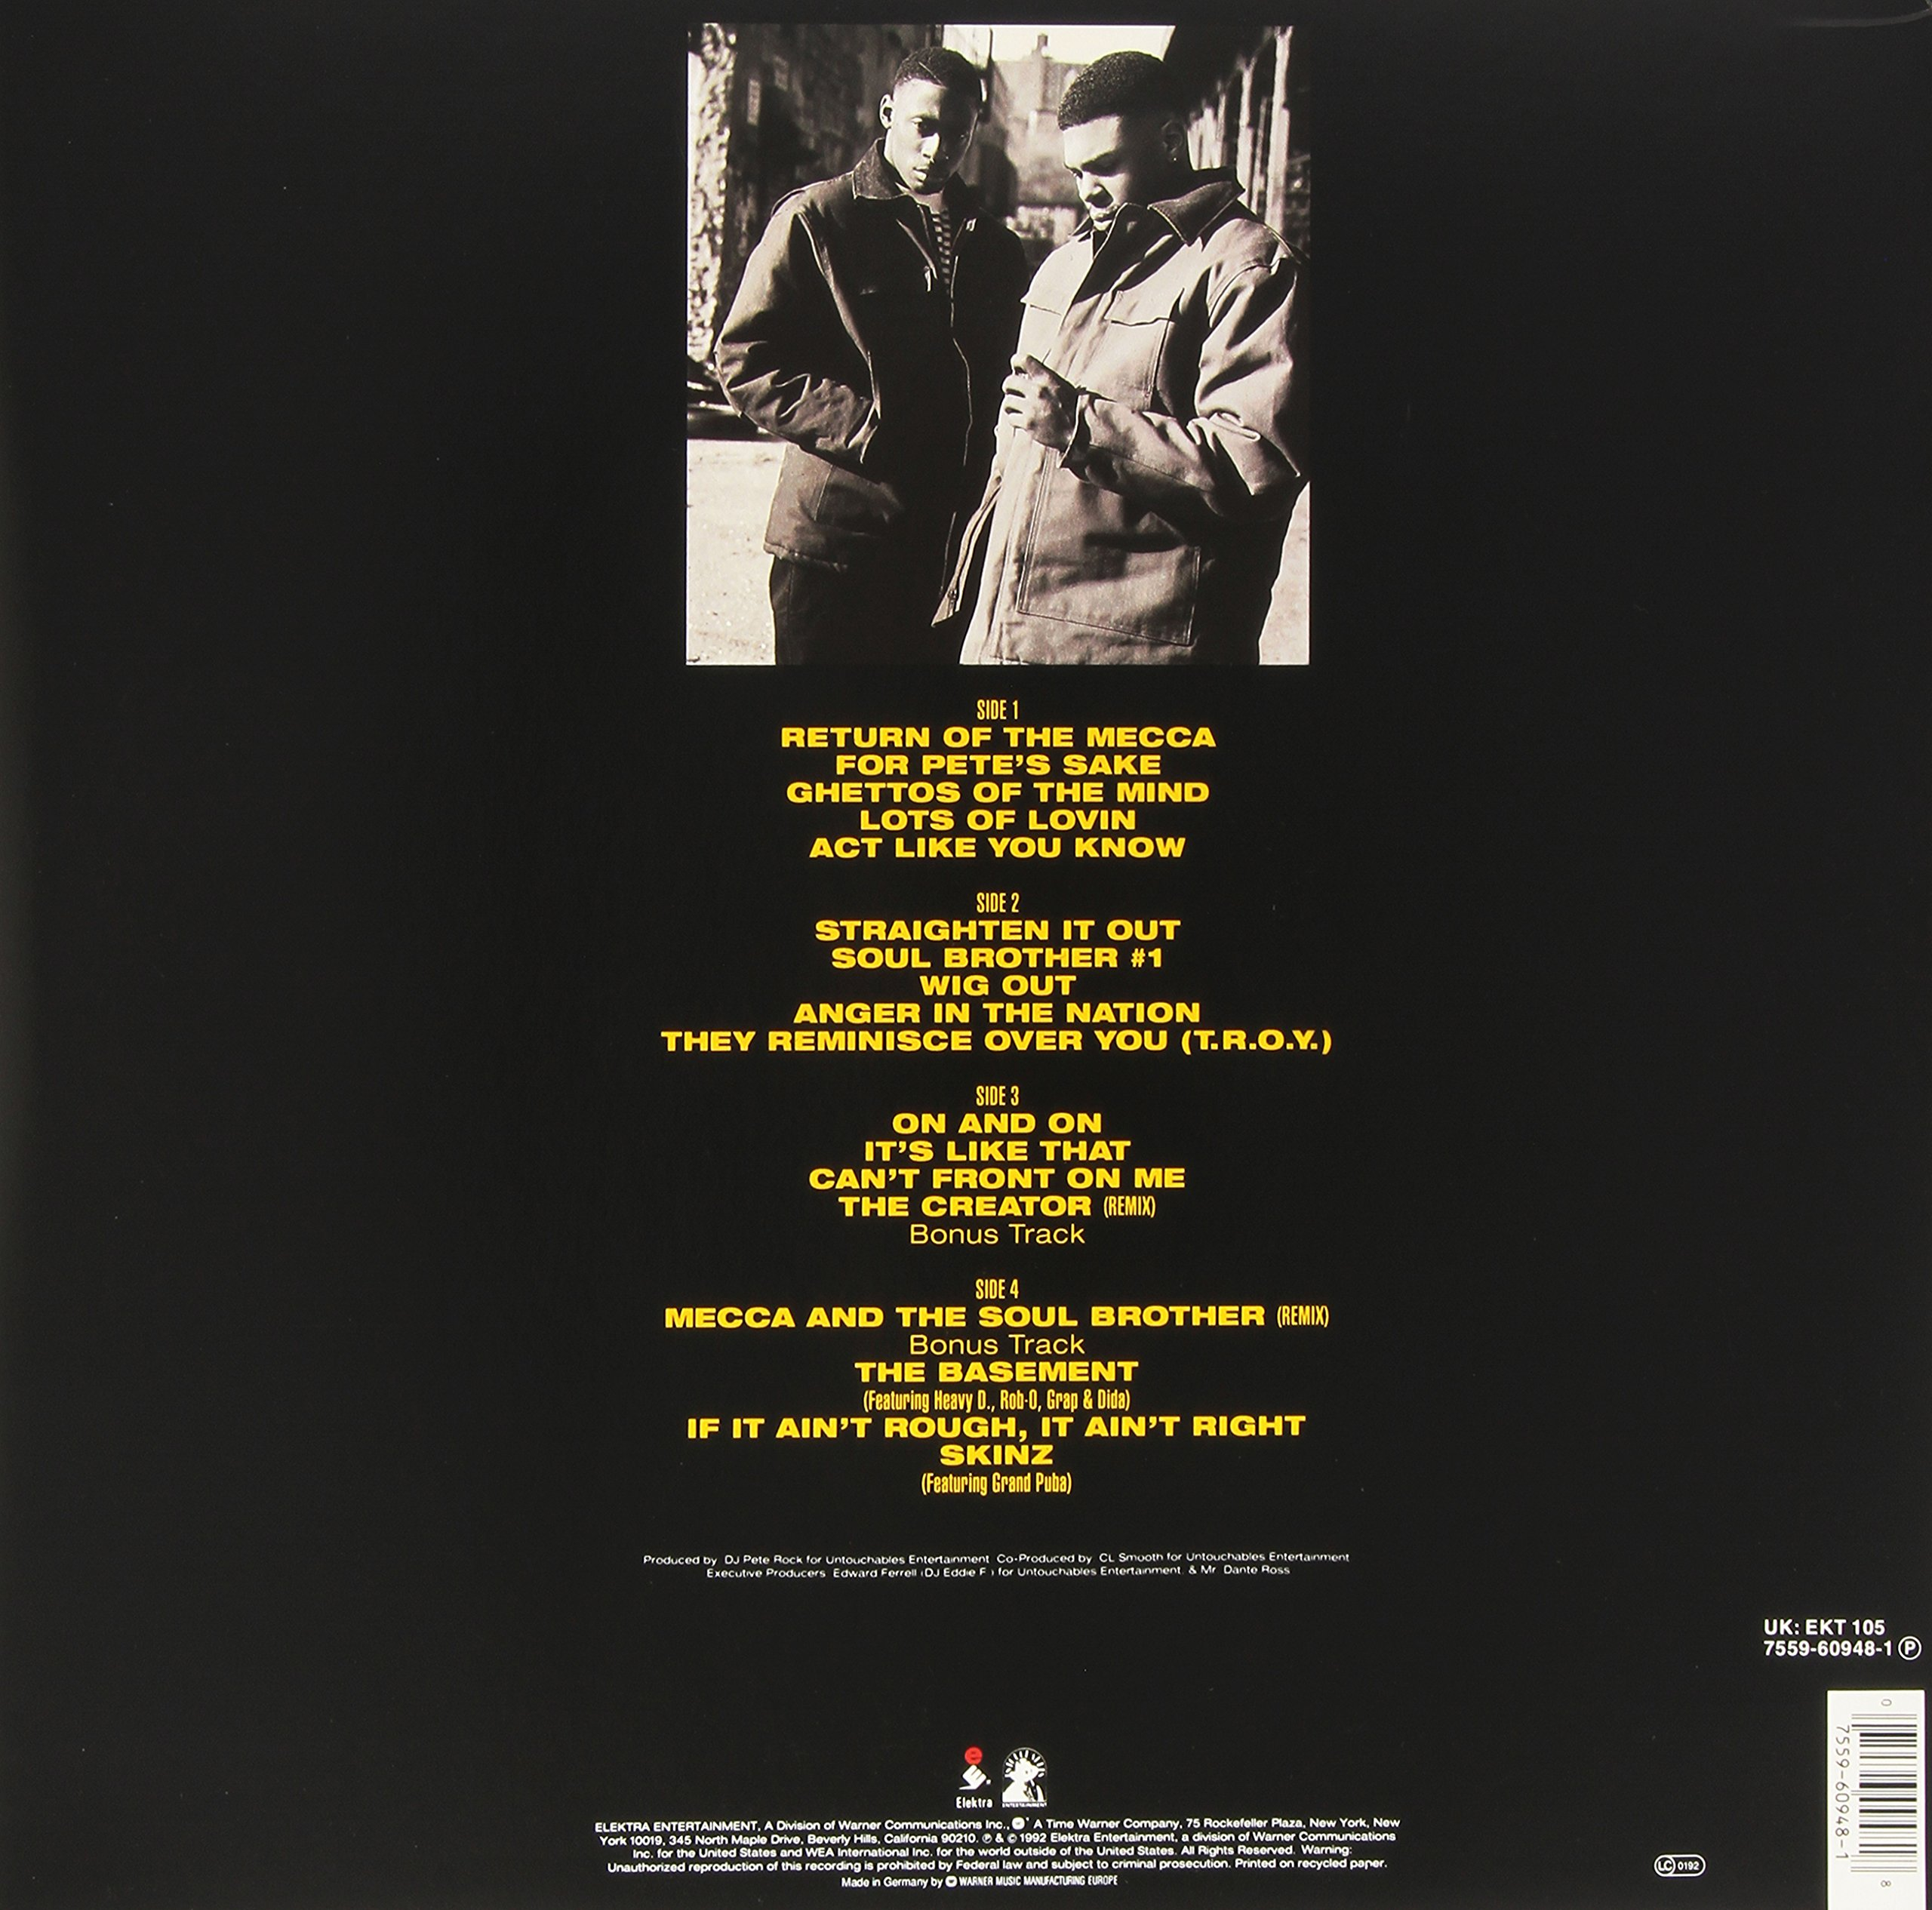 Mecca and the Soul Brother [Vinyl]